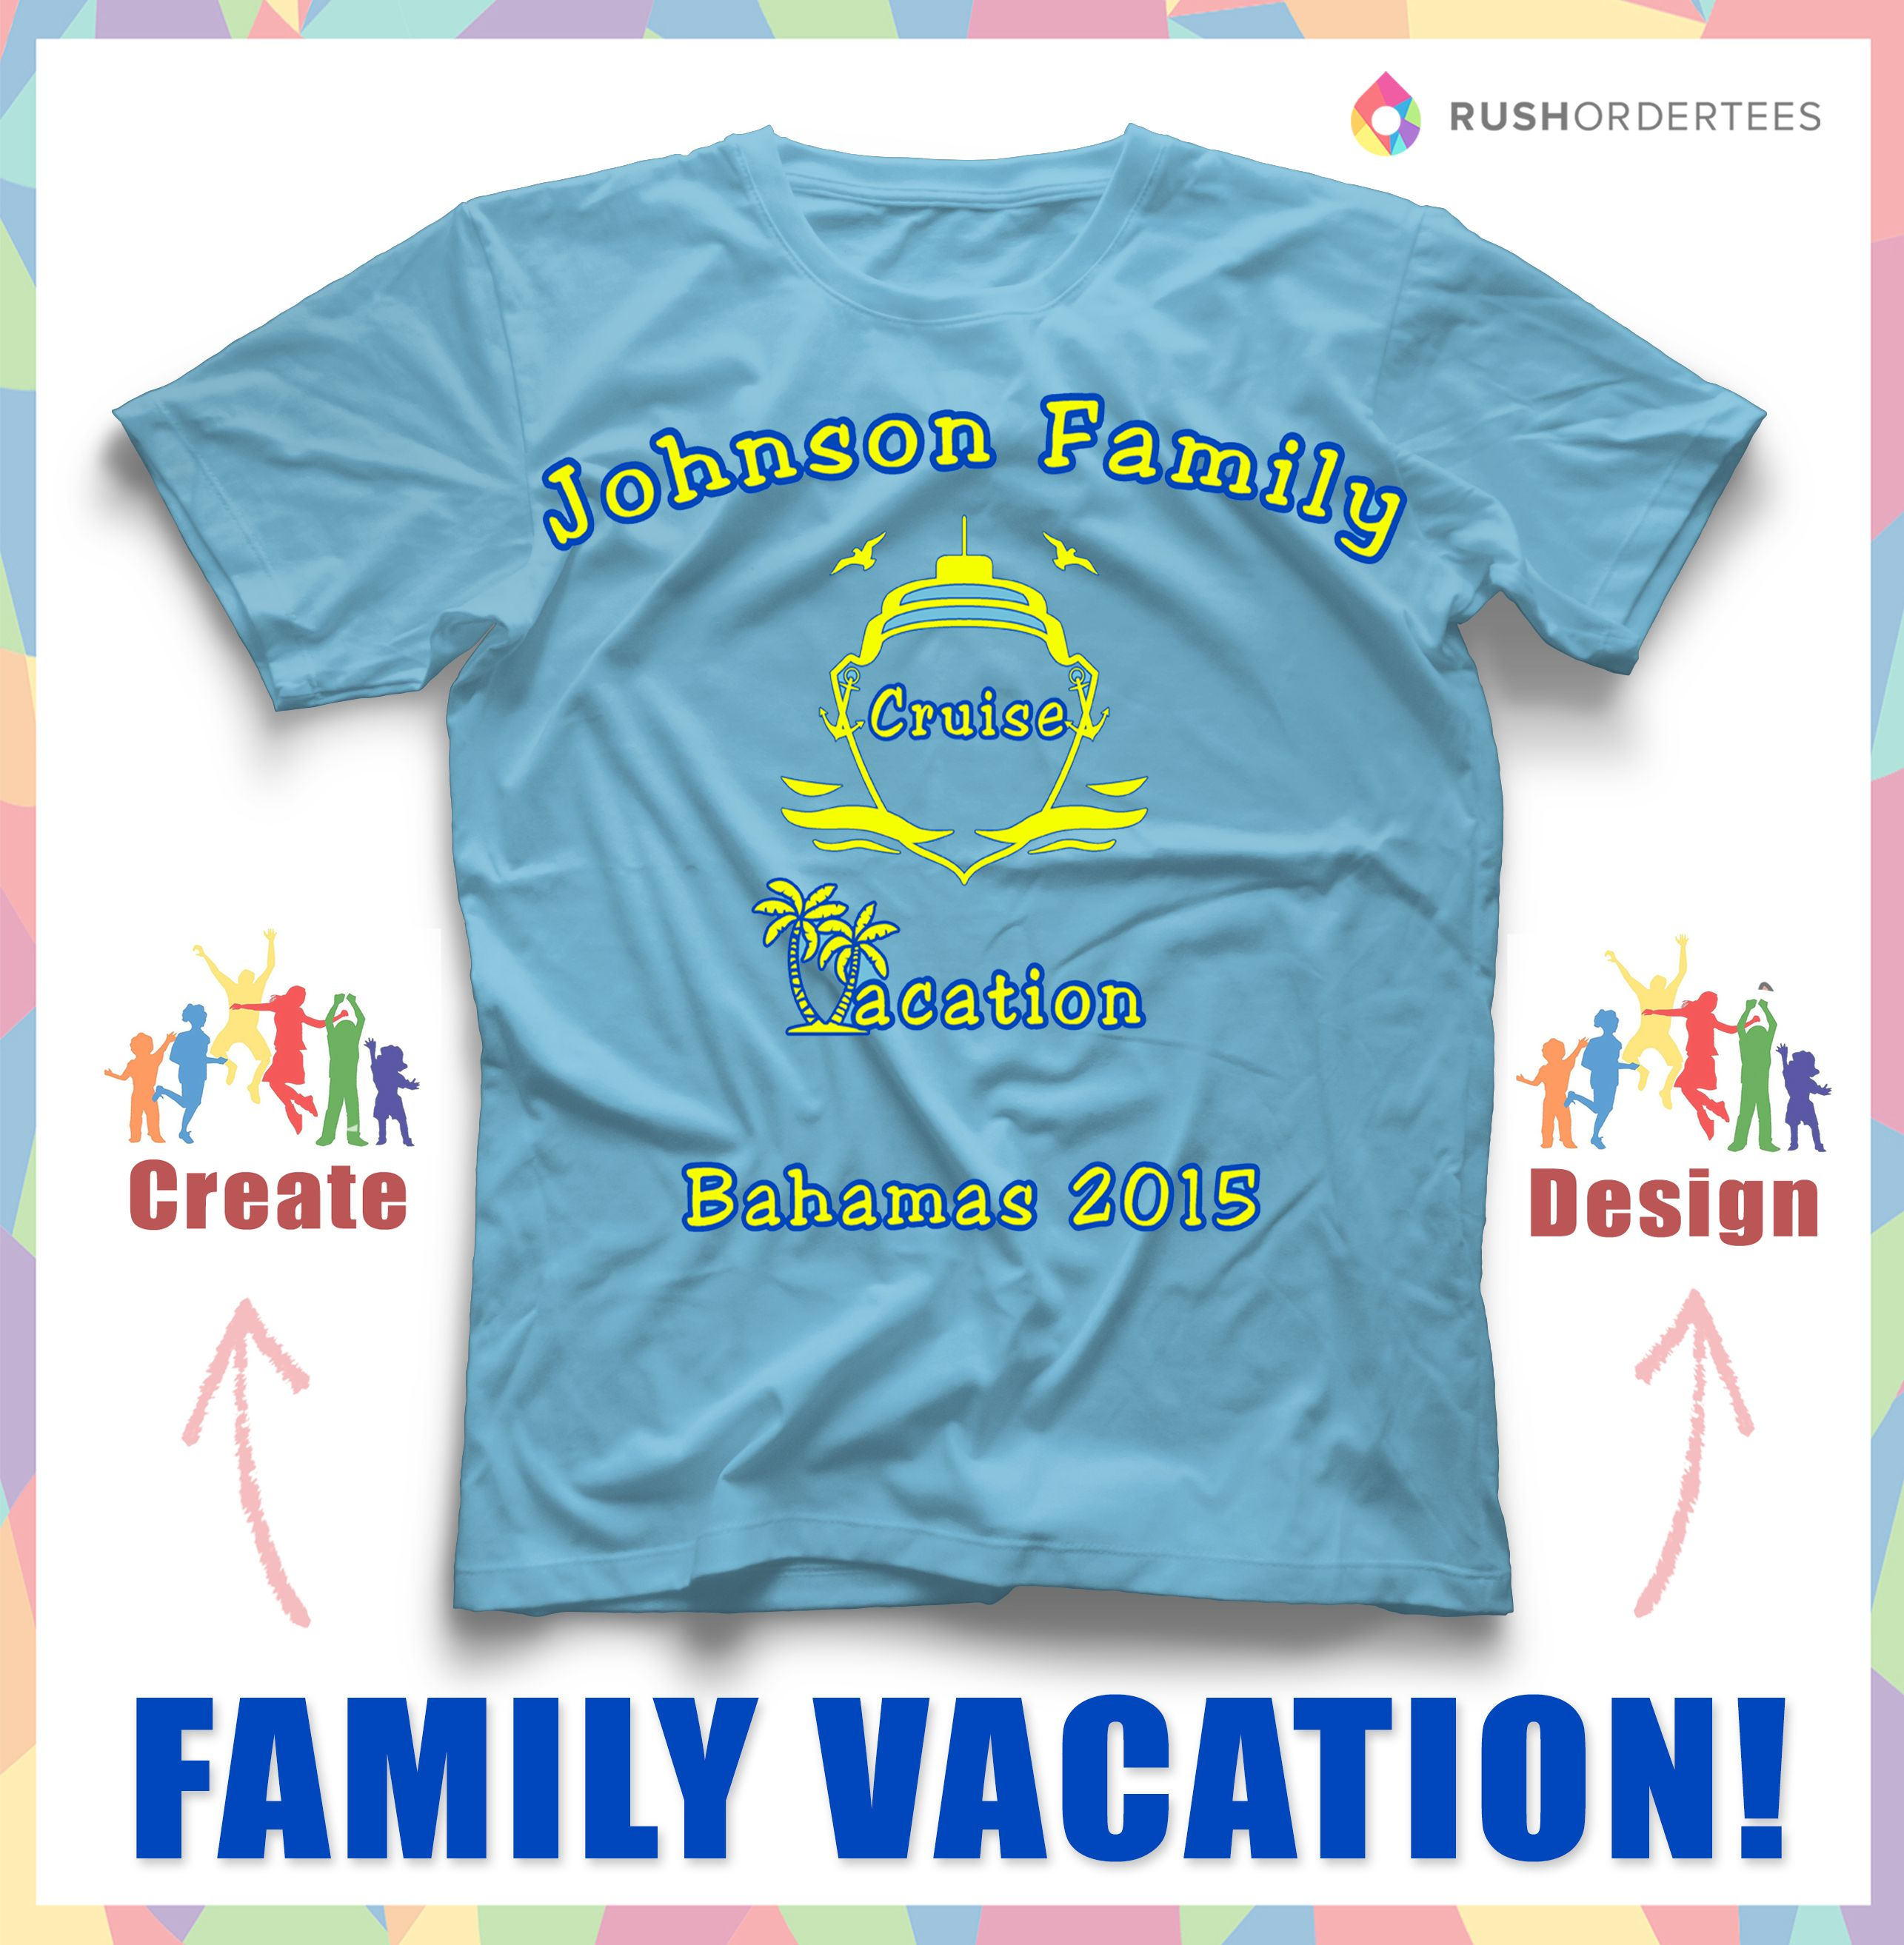 Design tshirt family - Family Cruise Vacation Custom T Shirt Design Idea Create A Family Vacation Shirt Design